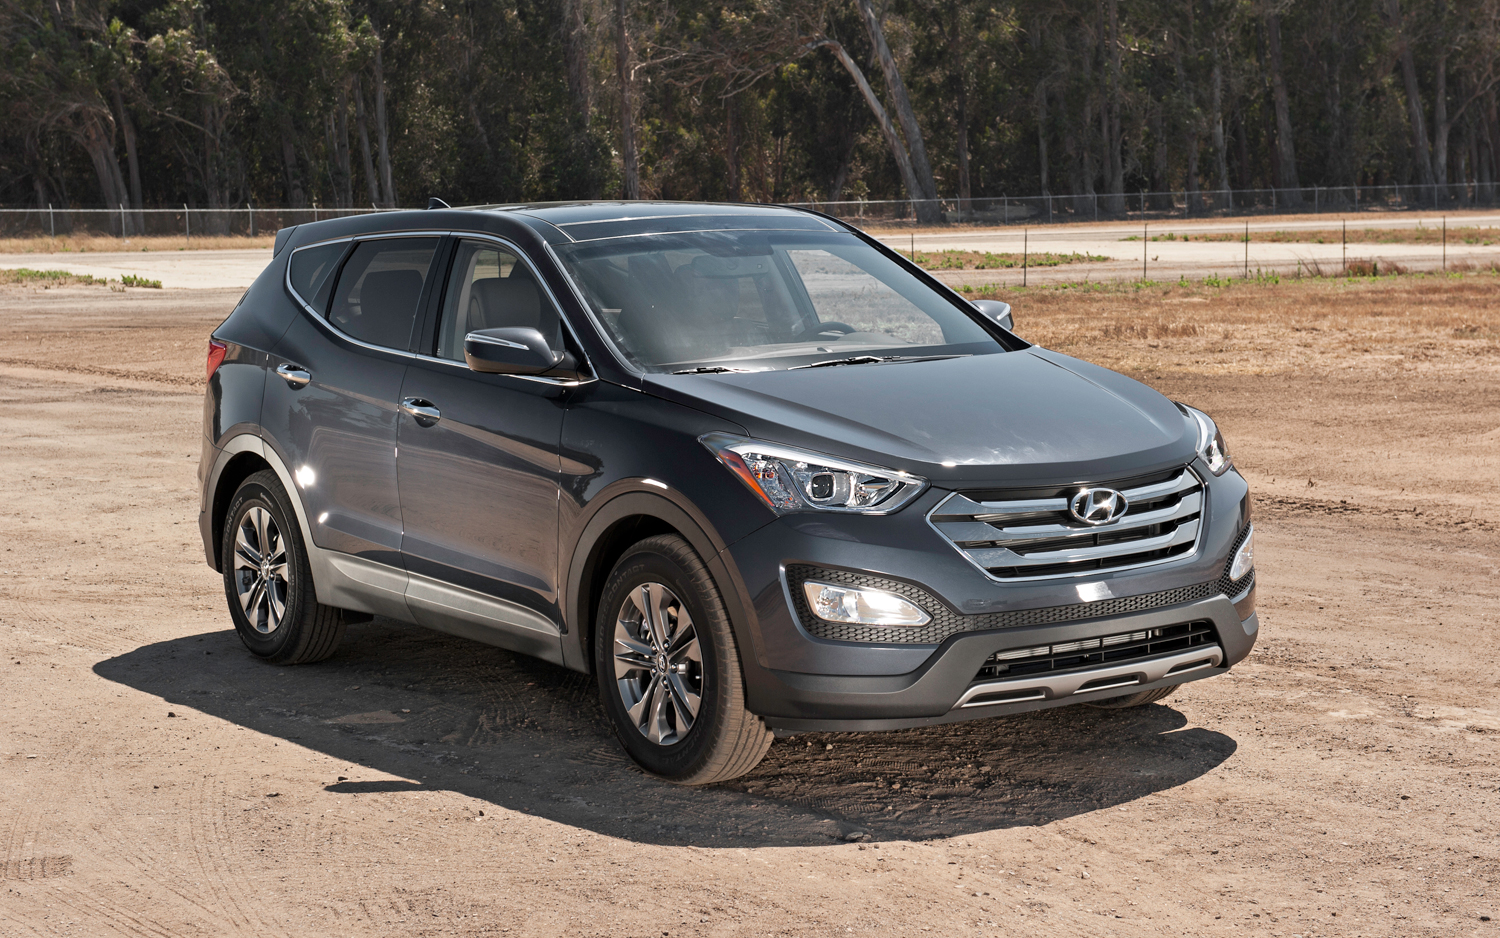 Hyundai Santa Fe 2.4 2013 photo - 9